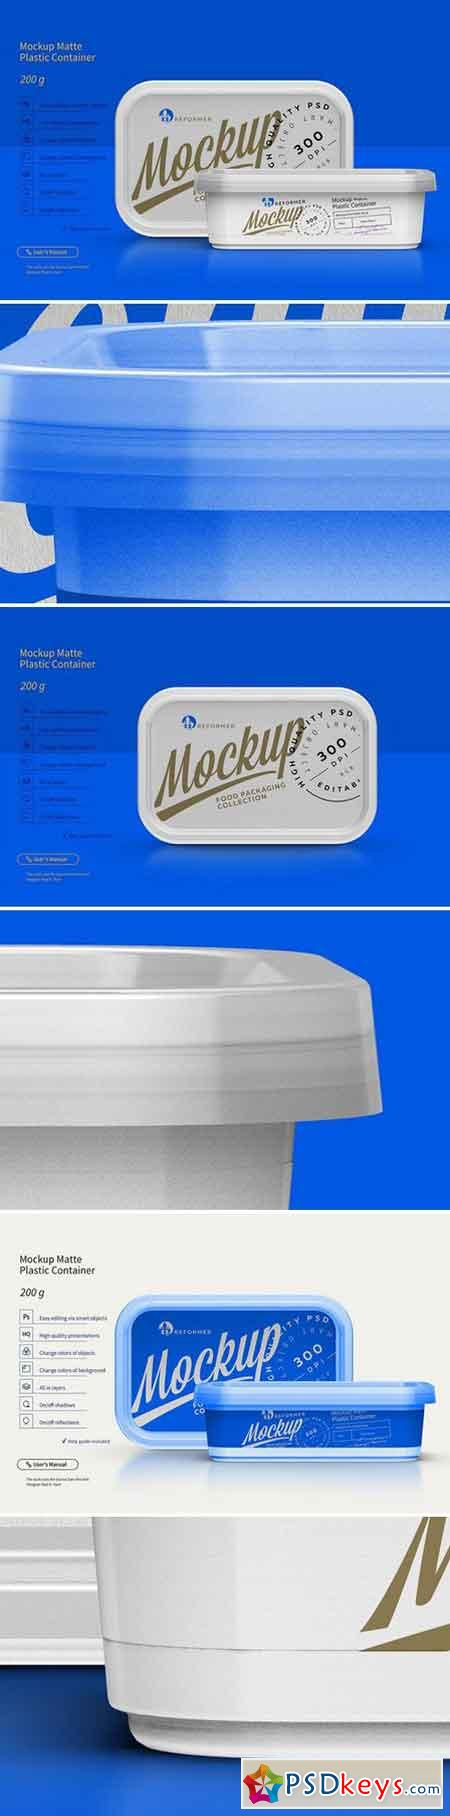 Mockup Plastic Container 200g 2403369